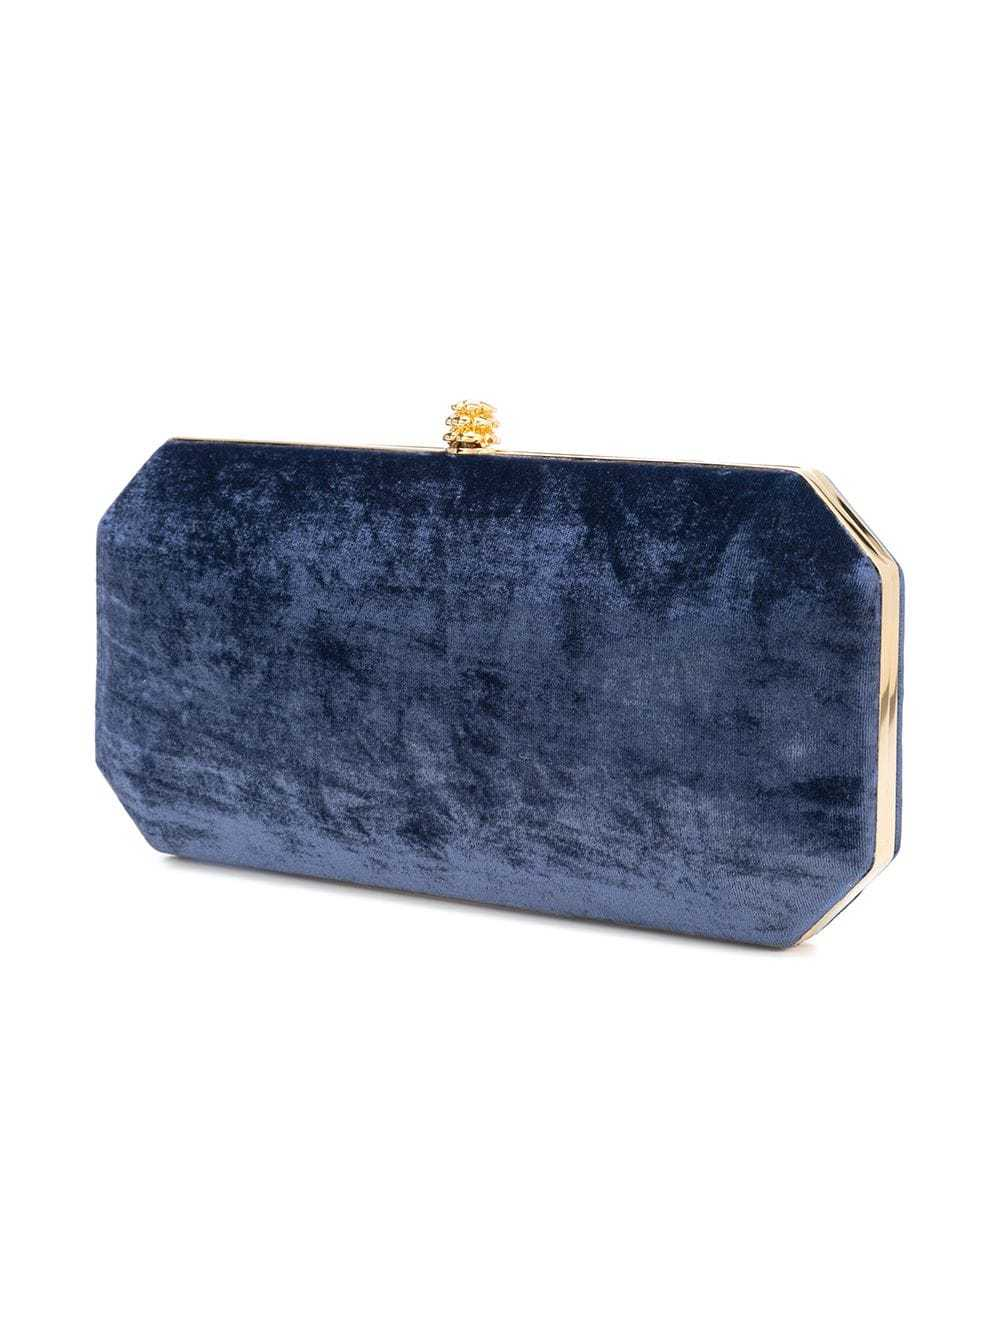 SUEDETTE LARGE  FLAT DARK ROYAL BLUE SUEDE BLUE SHOULDER BAG CLUTCH BAG